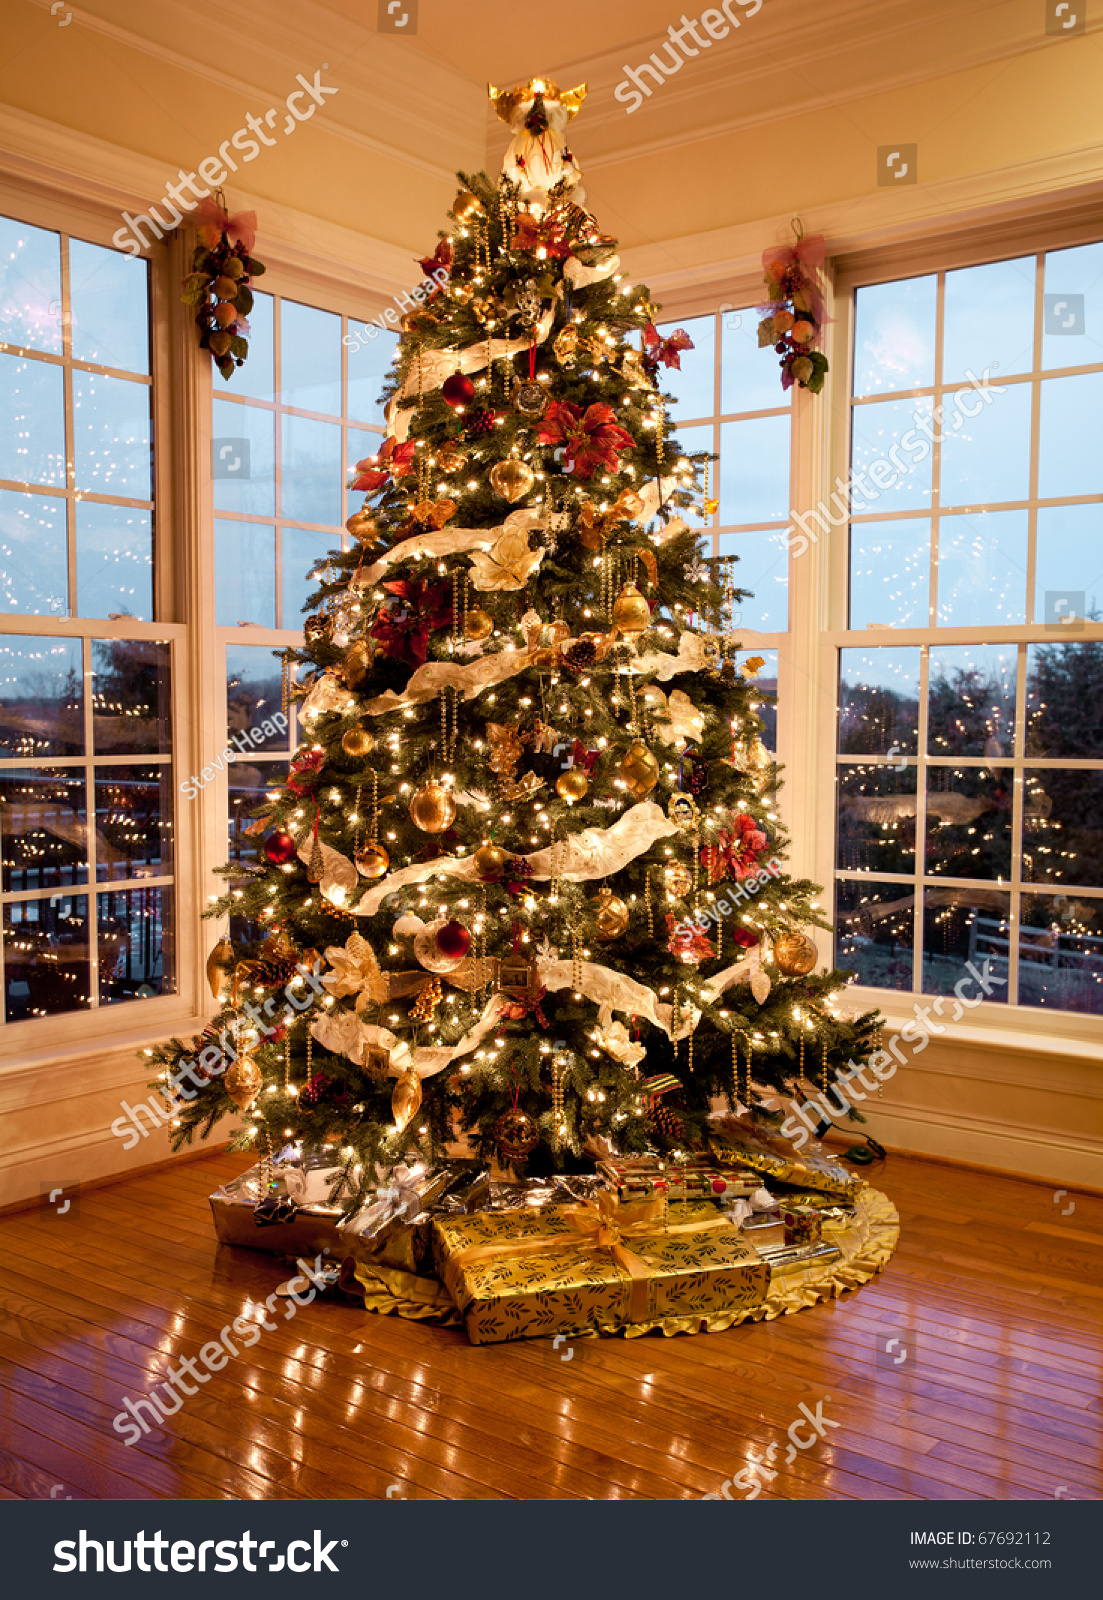 Christmas tree with presents and lights - Christmas Tree With Presents And Lights Reflecting In Windows Around The Tree In Modern Home